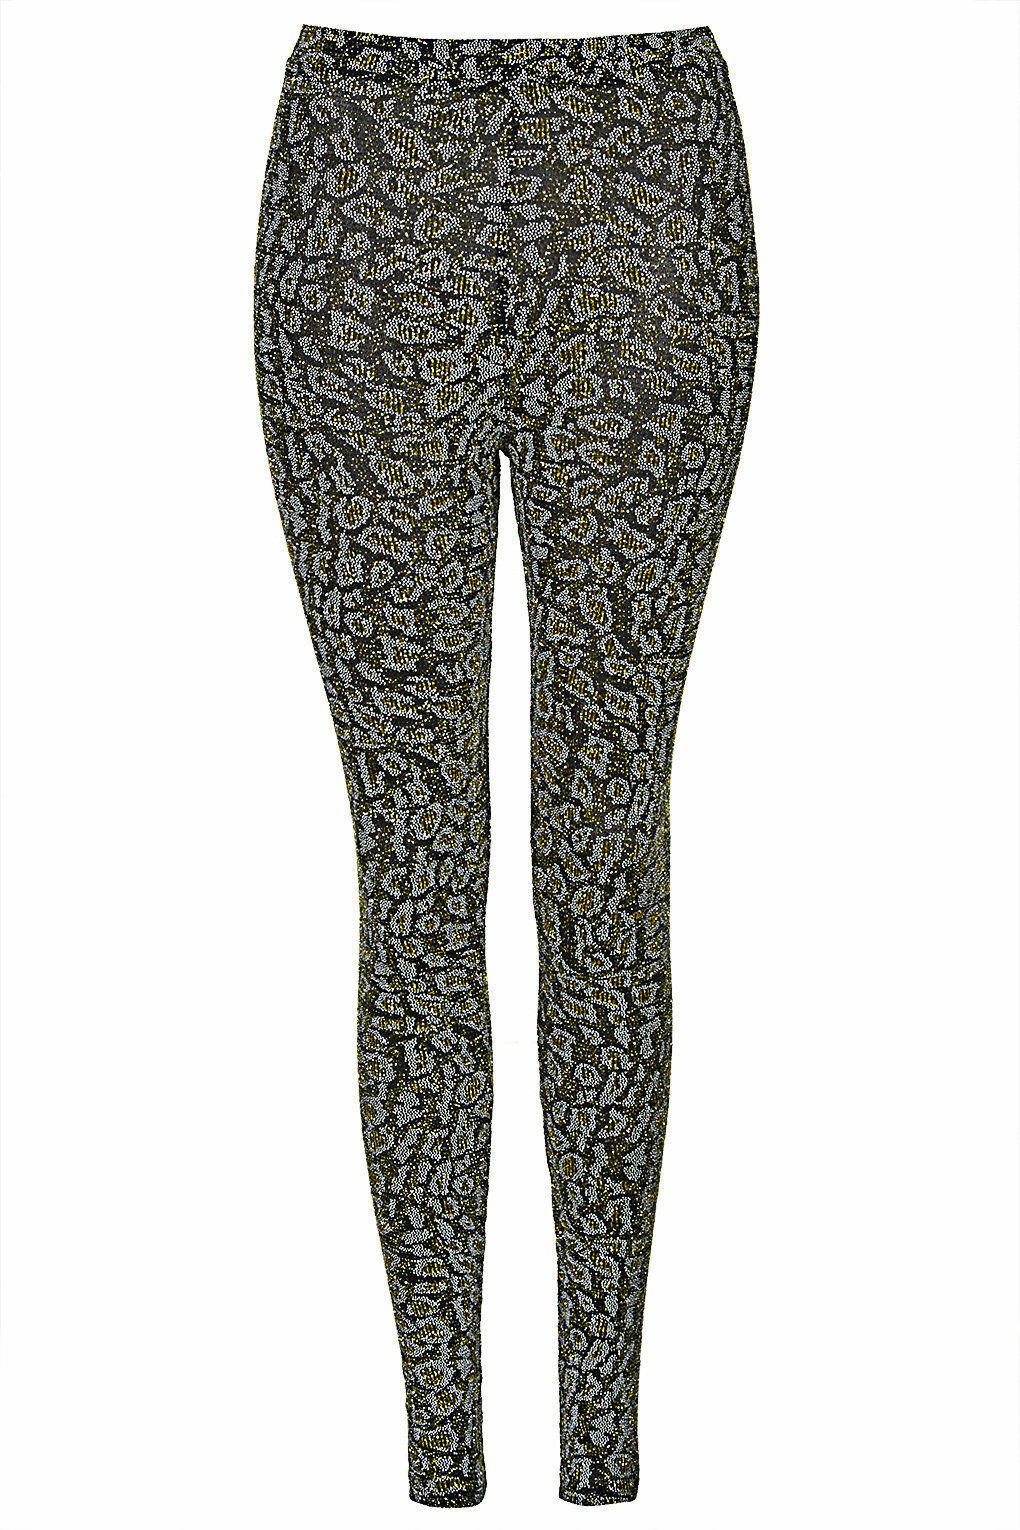 Topshop Leggings with all-over glitter print SIZE UK6 EUR34 US2